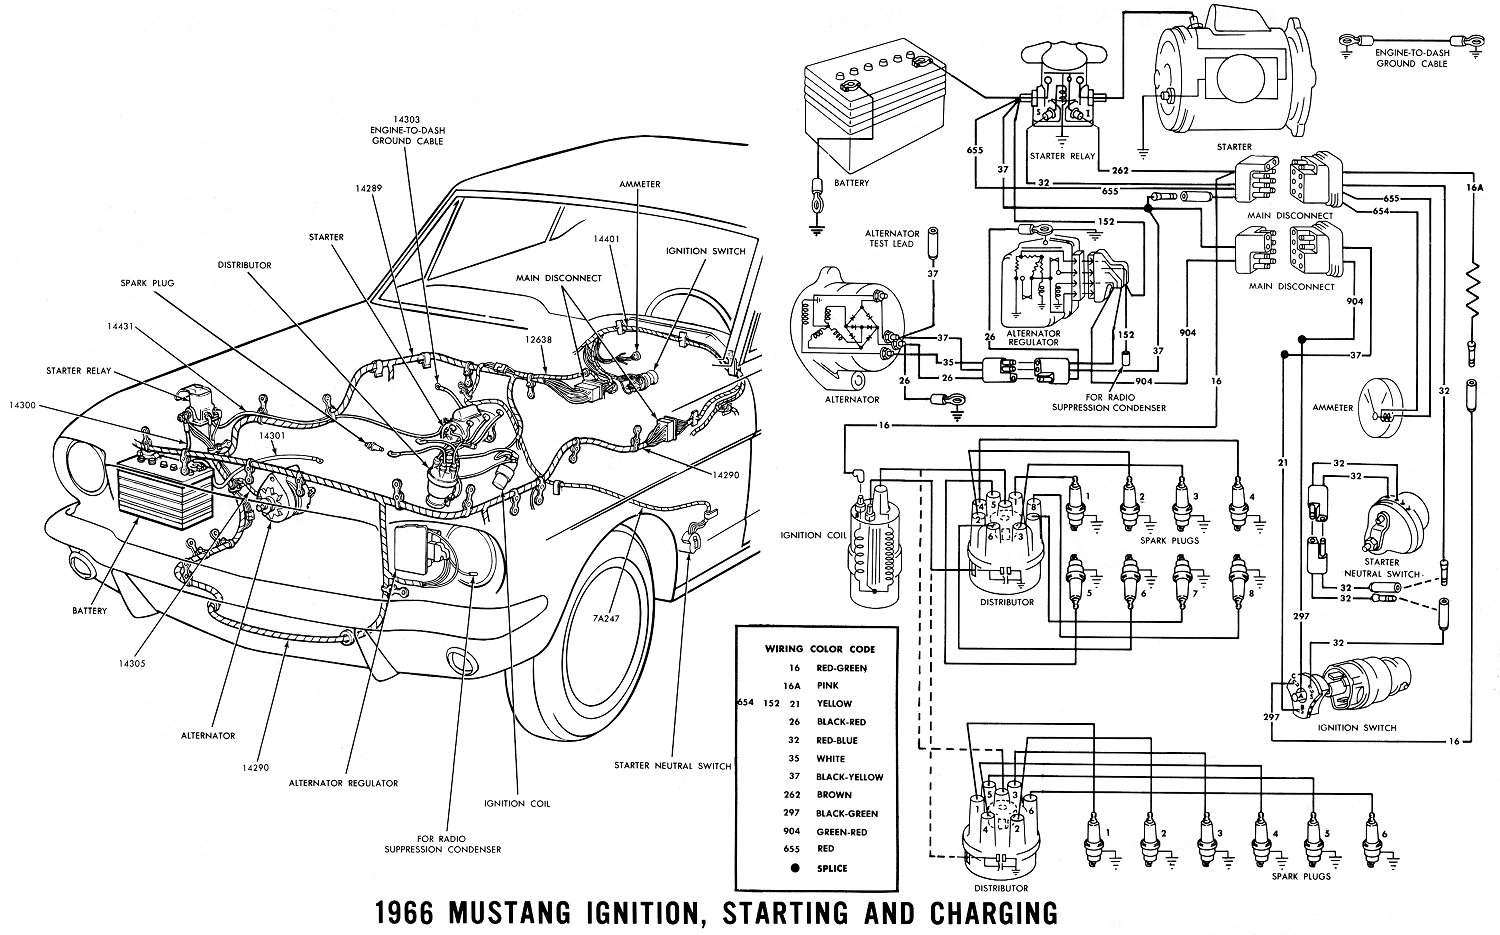 66ignit 1966 mustang wiring diagrams average joe restoration 66 mustang alternator wiring diagram at couponss.co